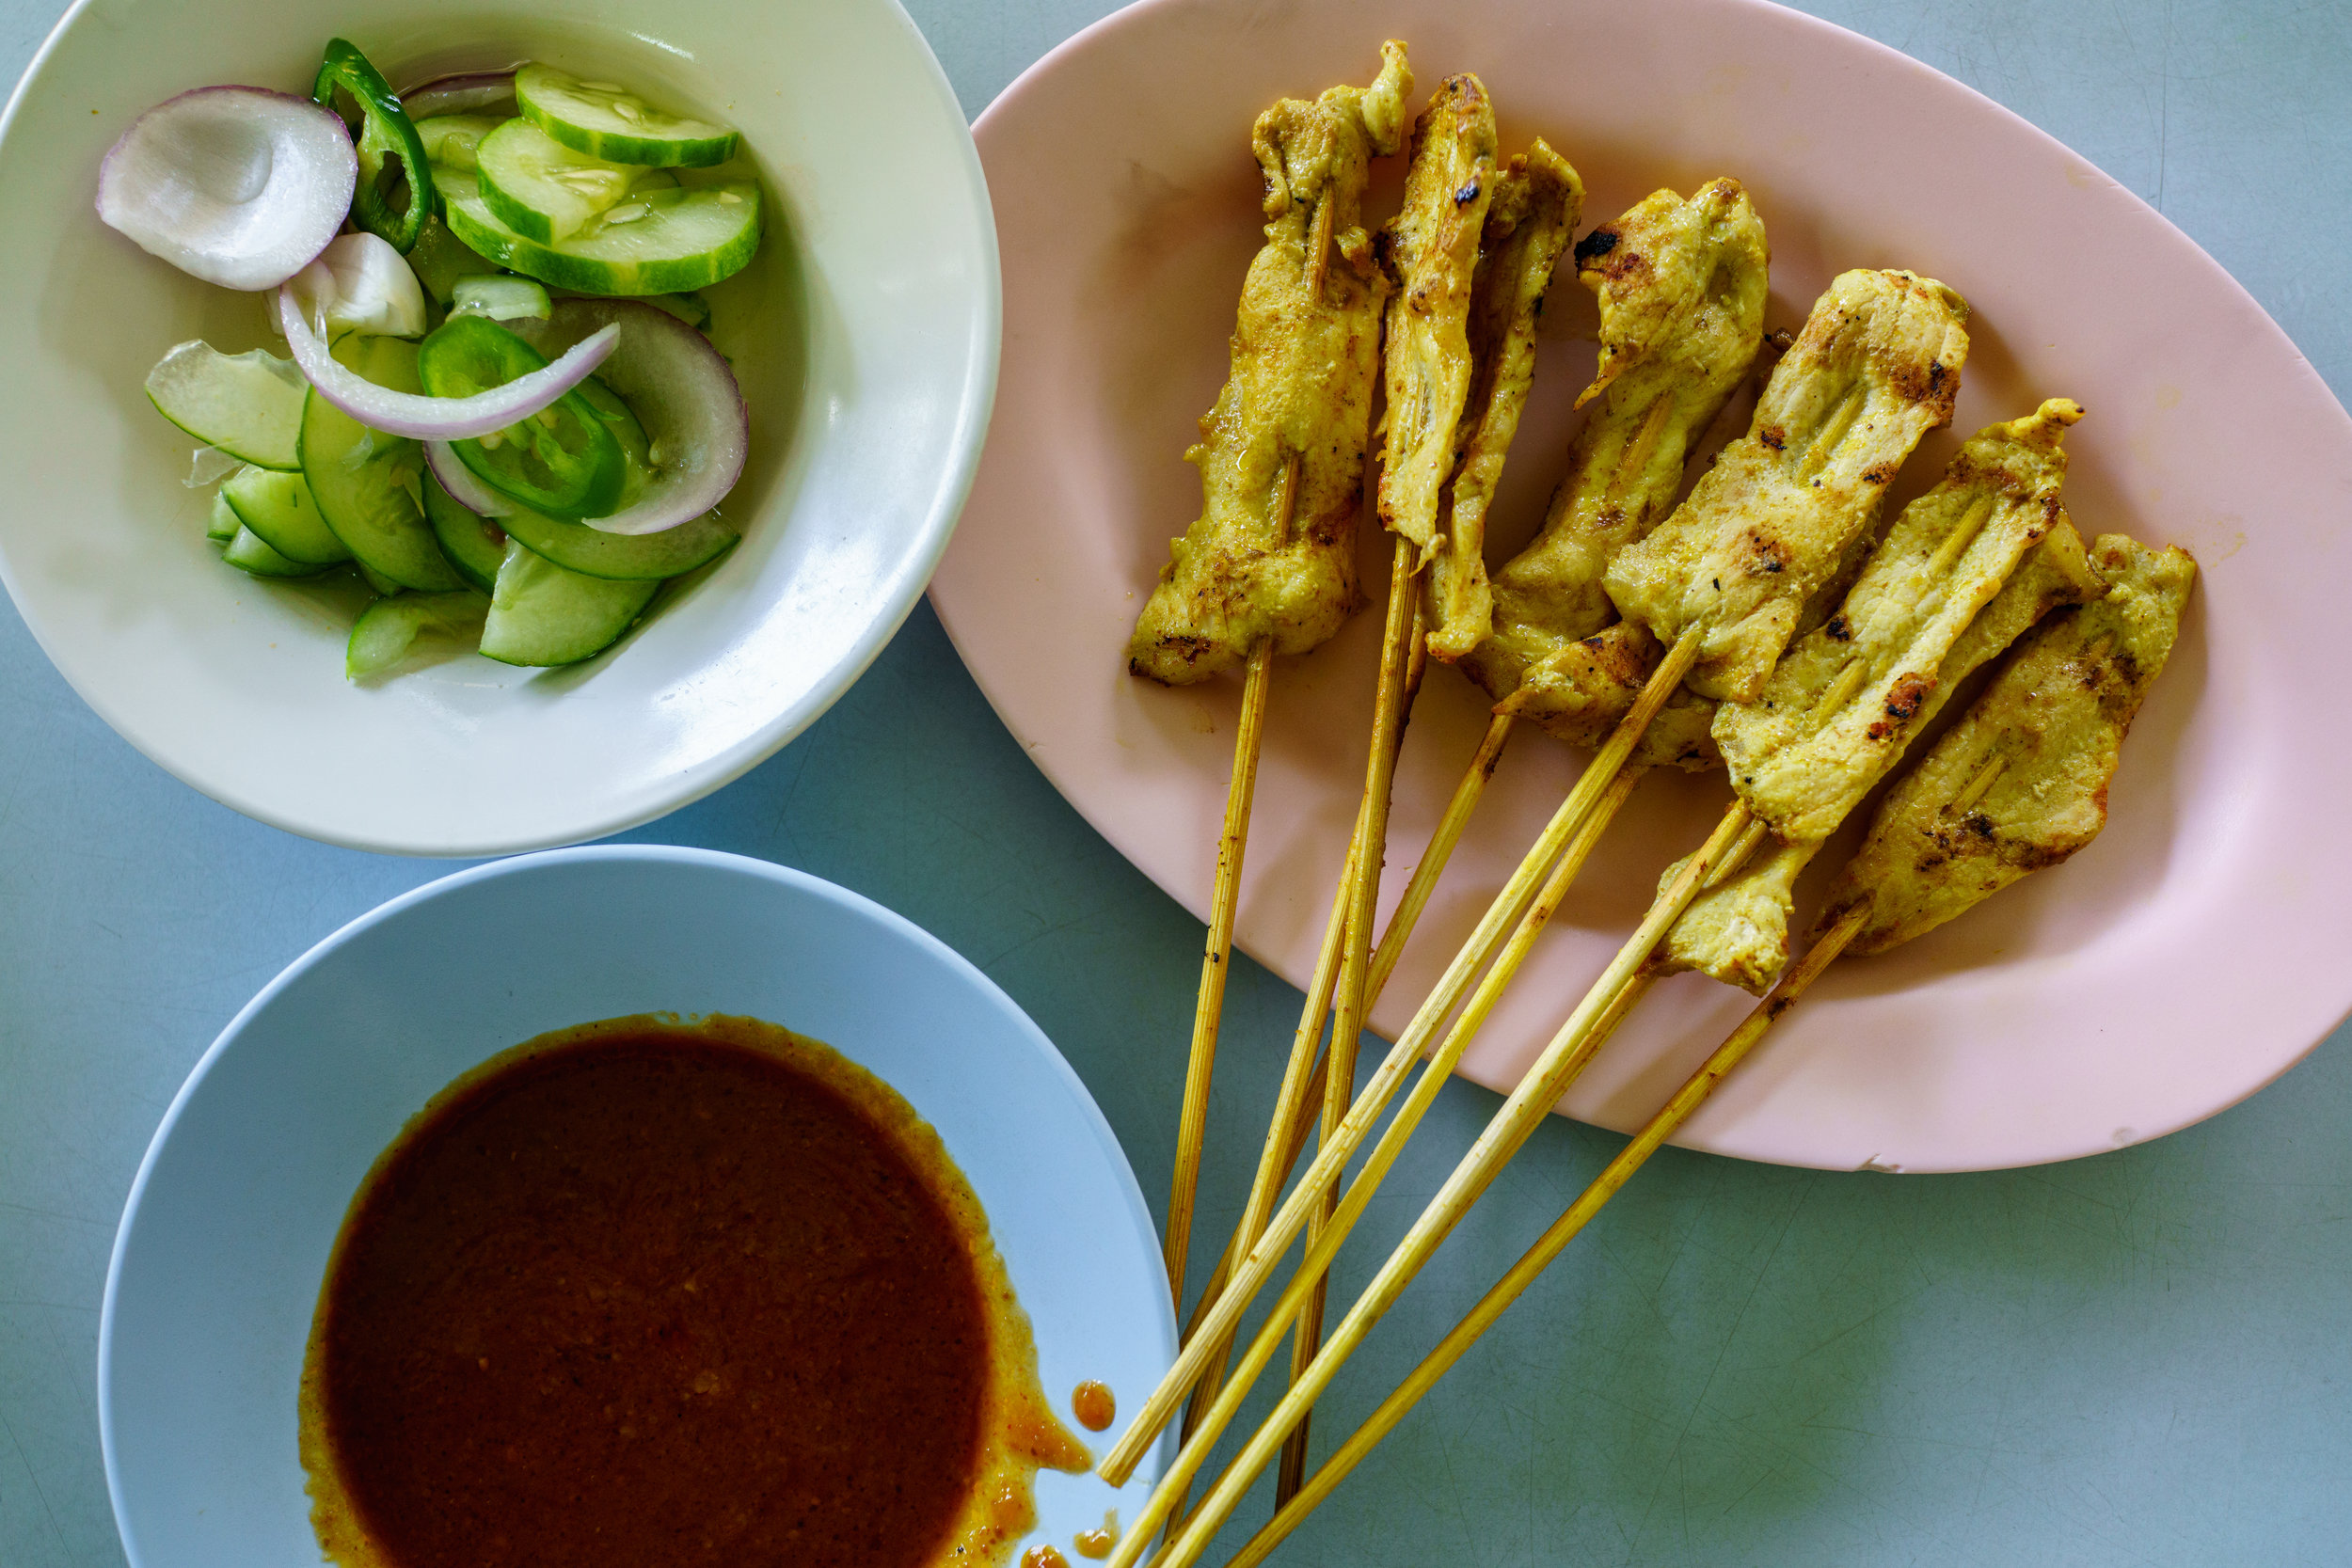 Skewers all around